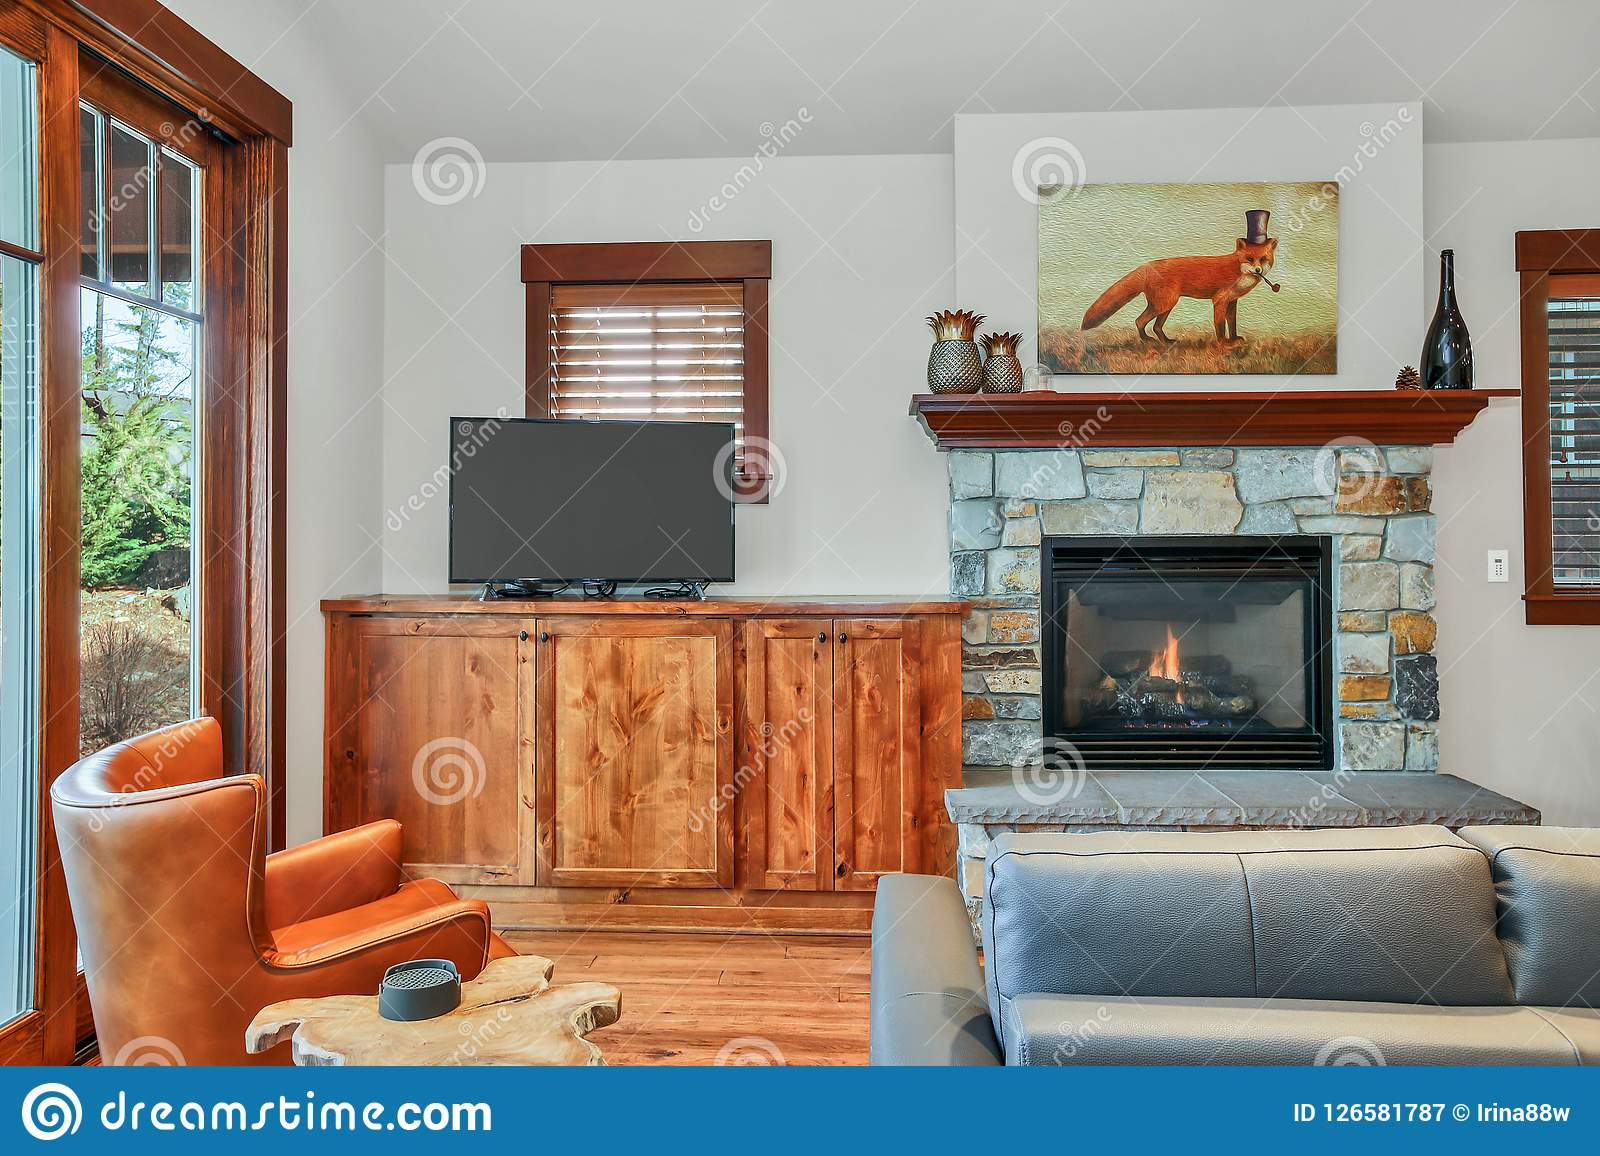 Adorable Living Room Interior With Stone Fireplace Stock Image